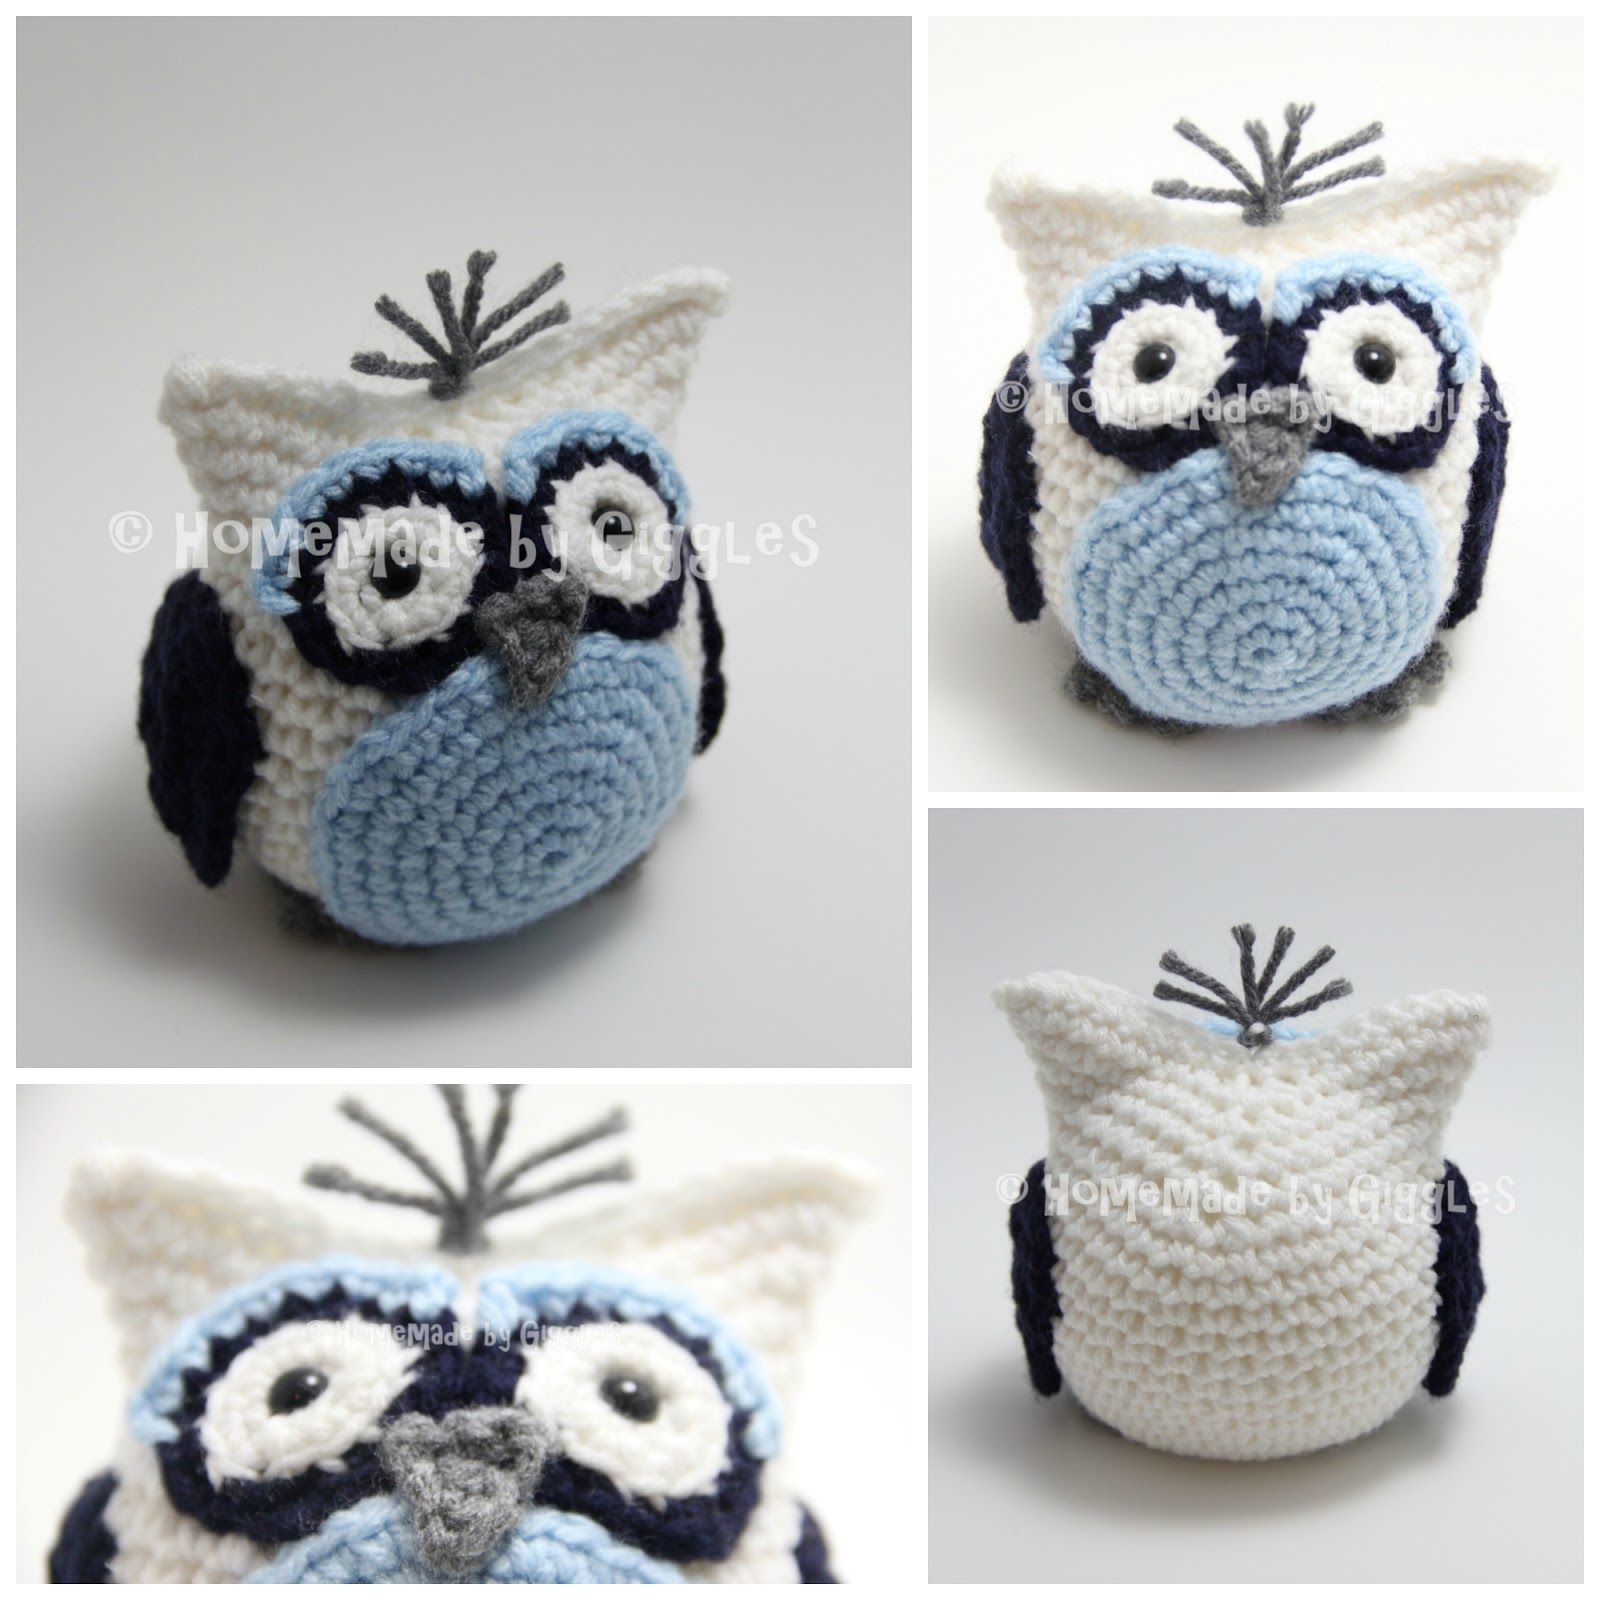 Homemade by Giggles: Bean Bag Owl - FREE Crochet Pattern! | Annien ...